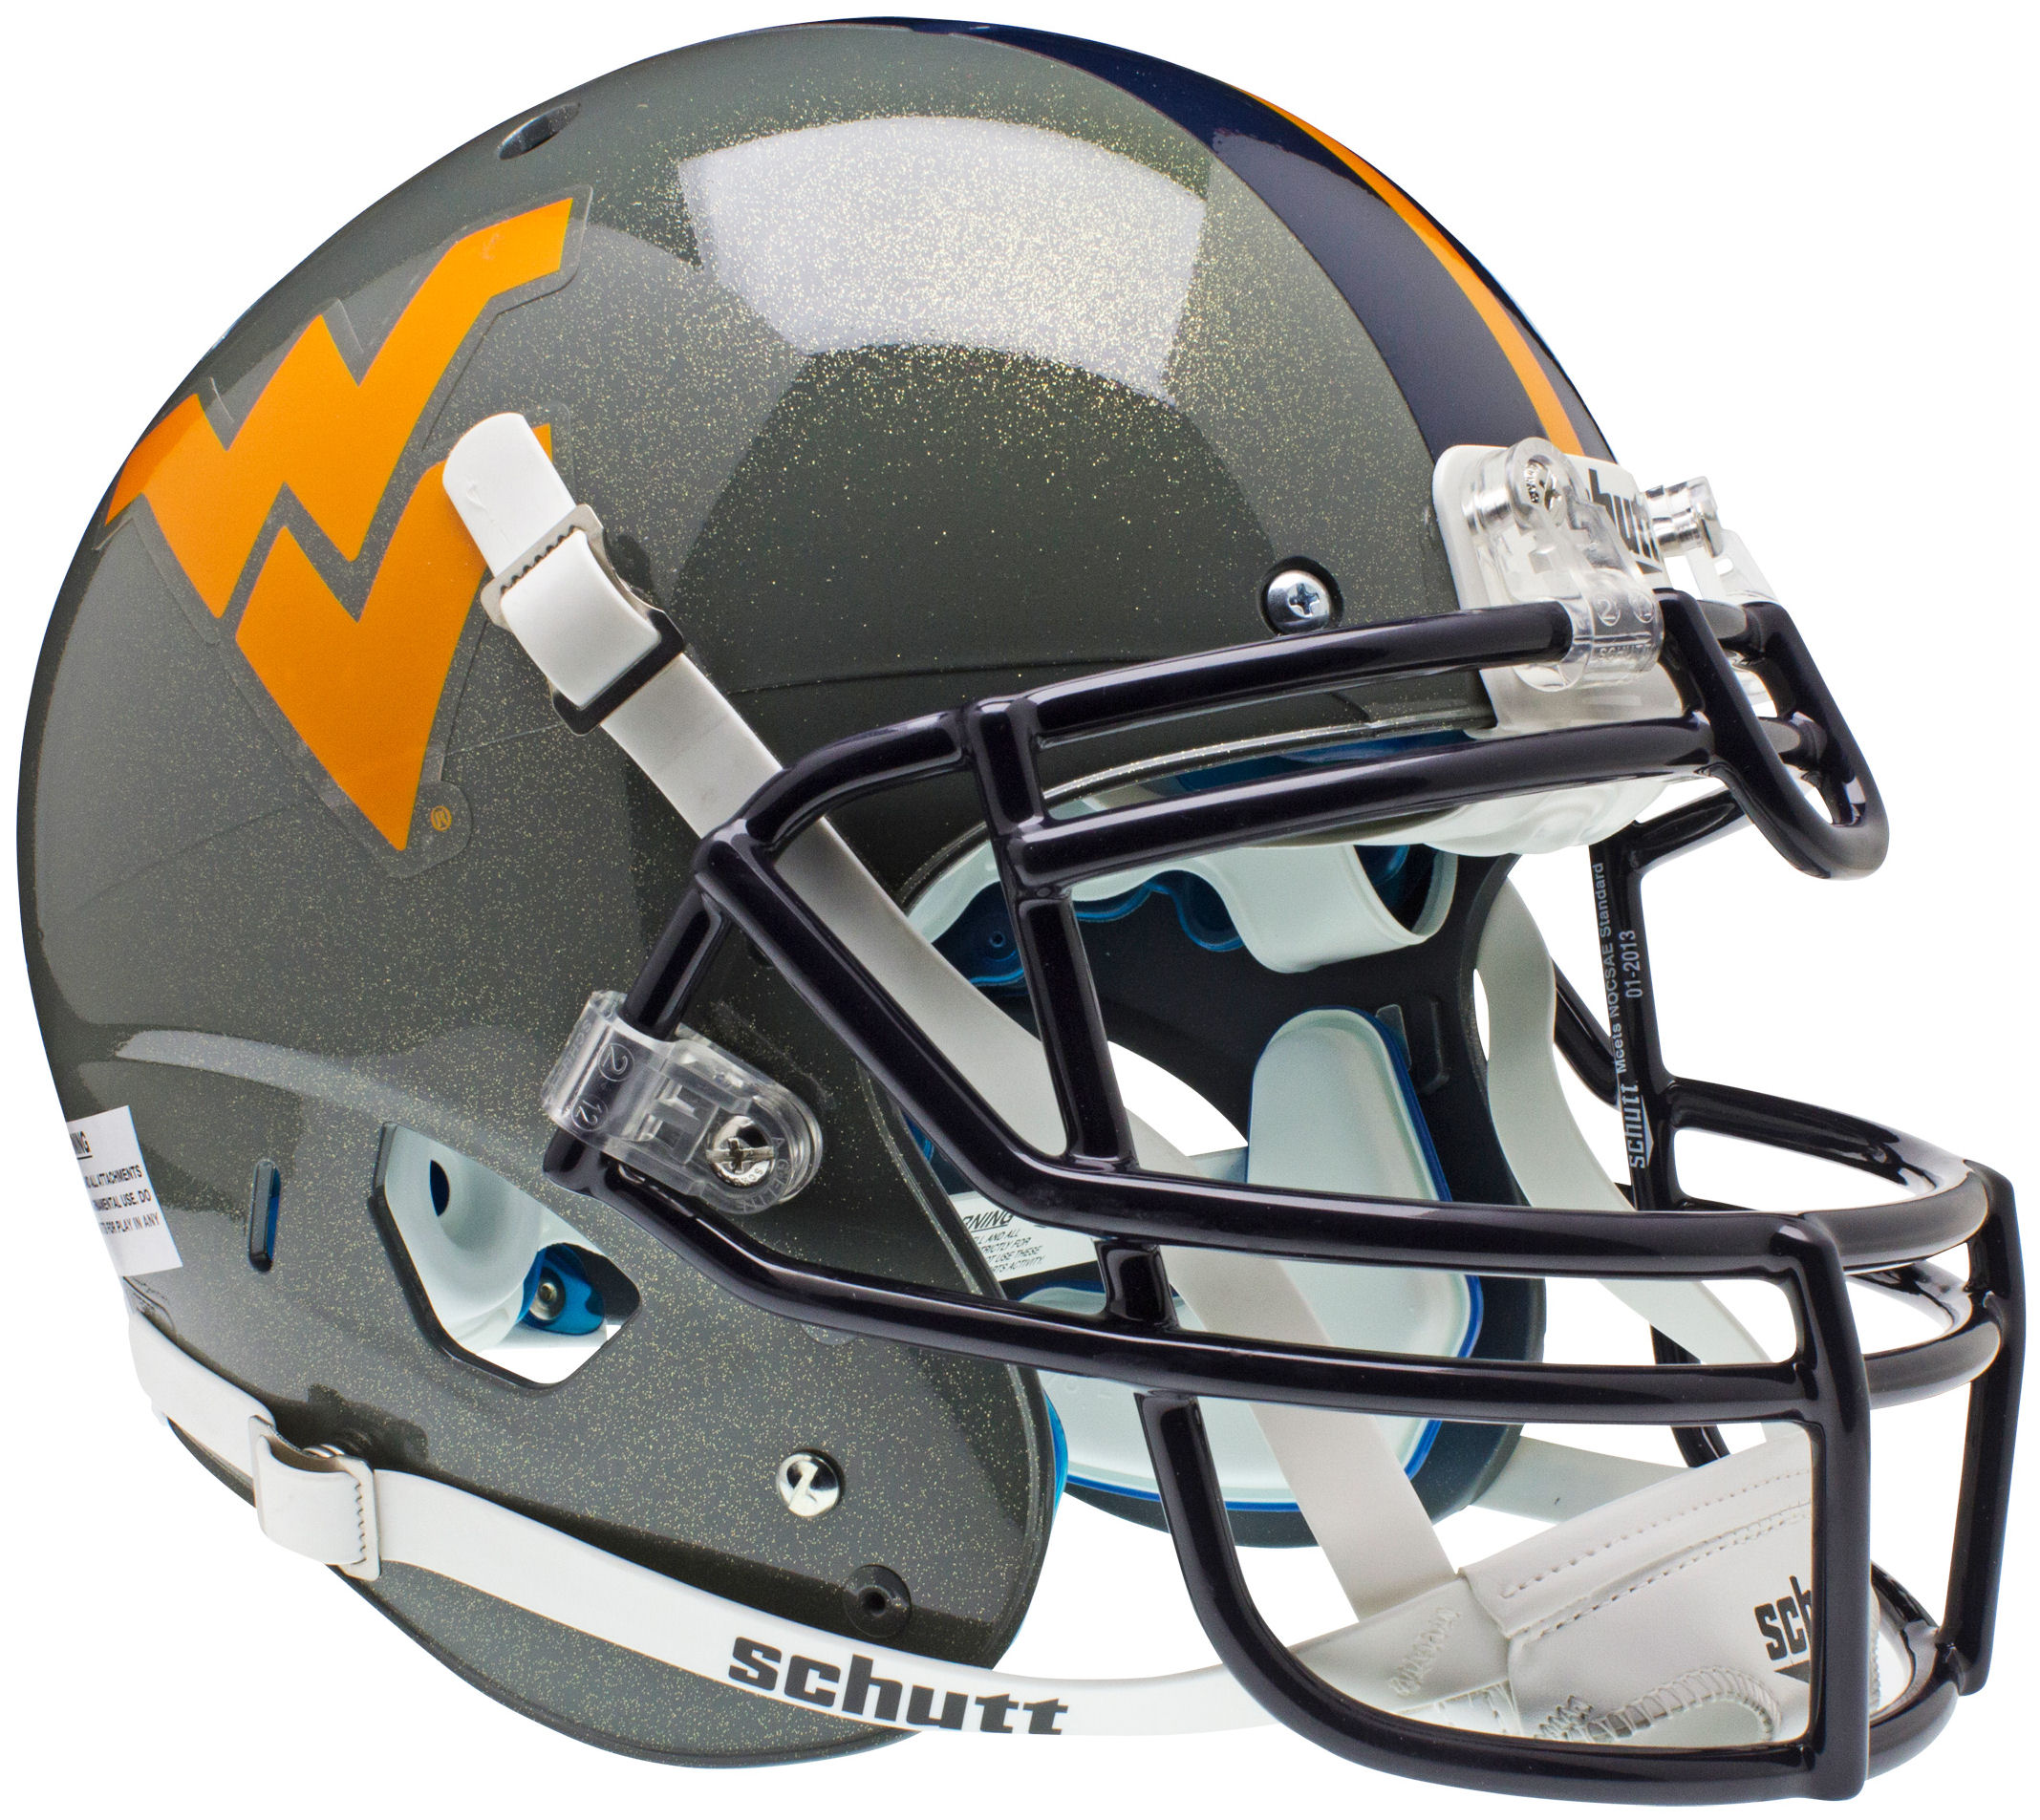 West Virginia Mountaineers Authentic College XP Football Helmet Schutt <B>Gray Sparkles</B>